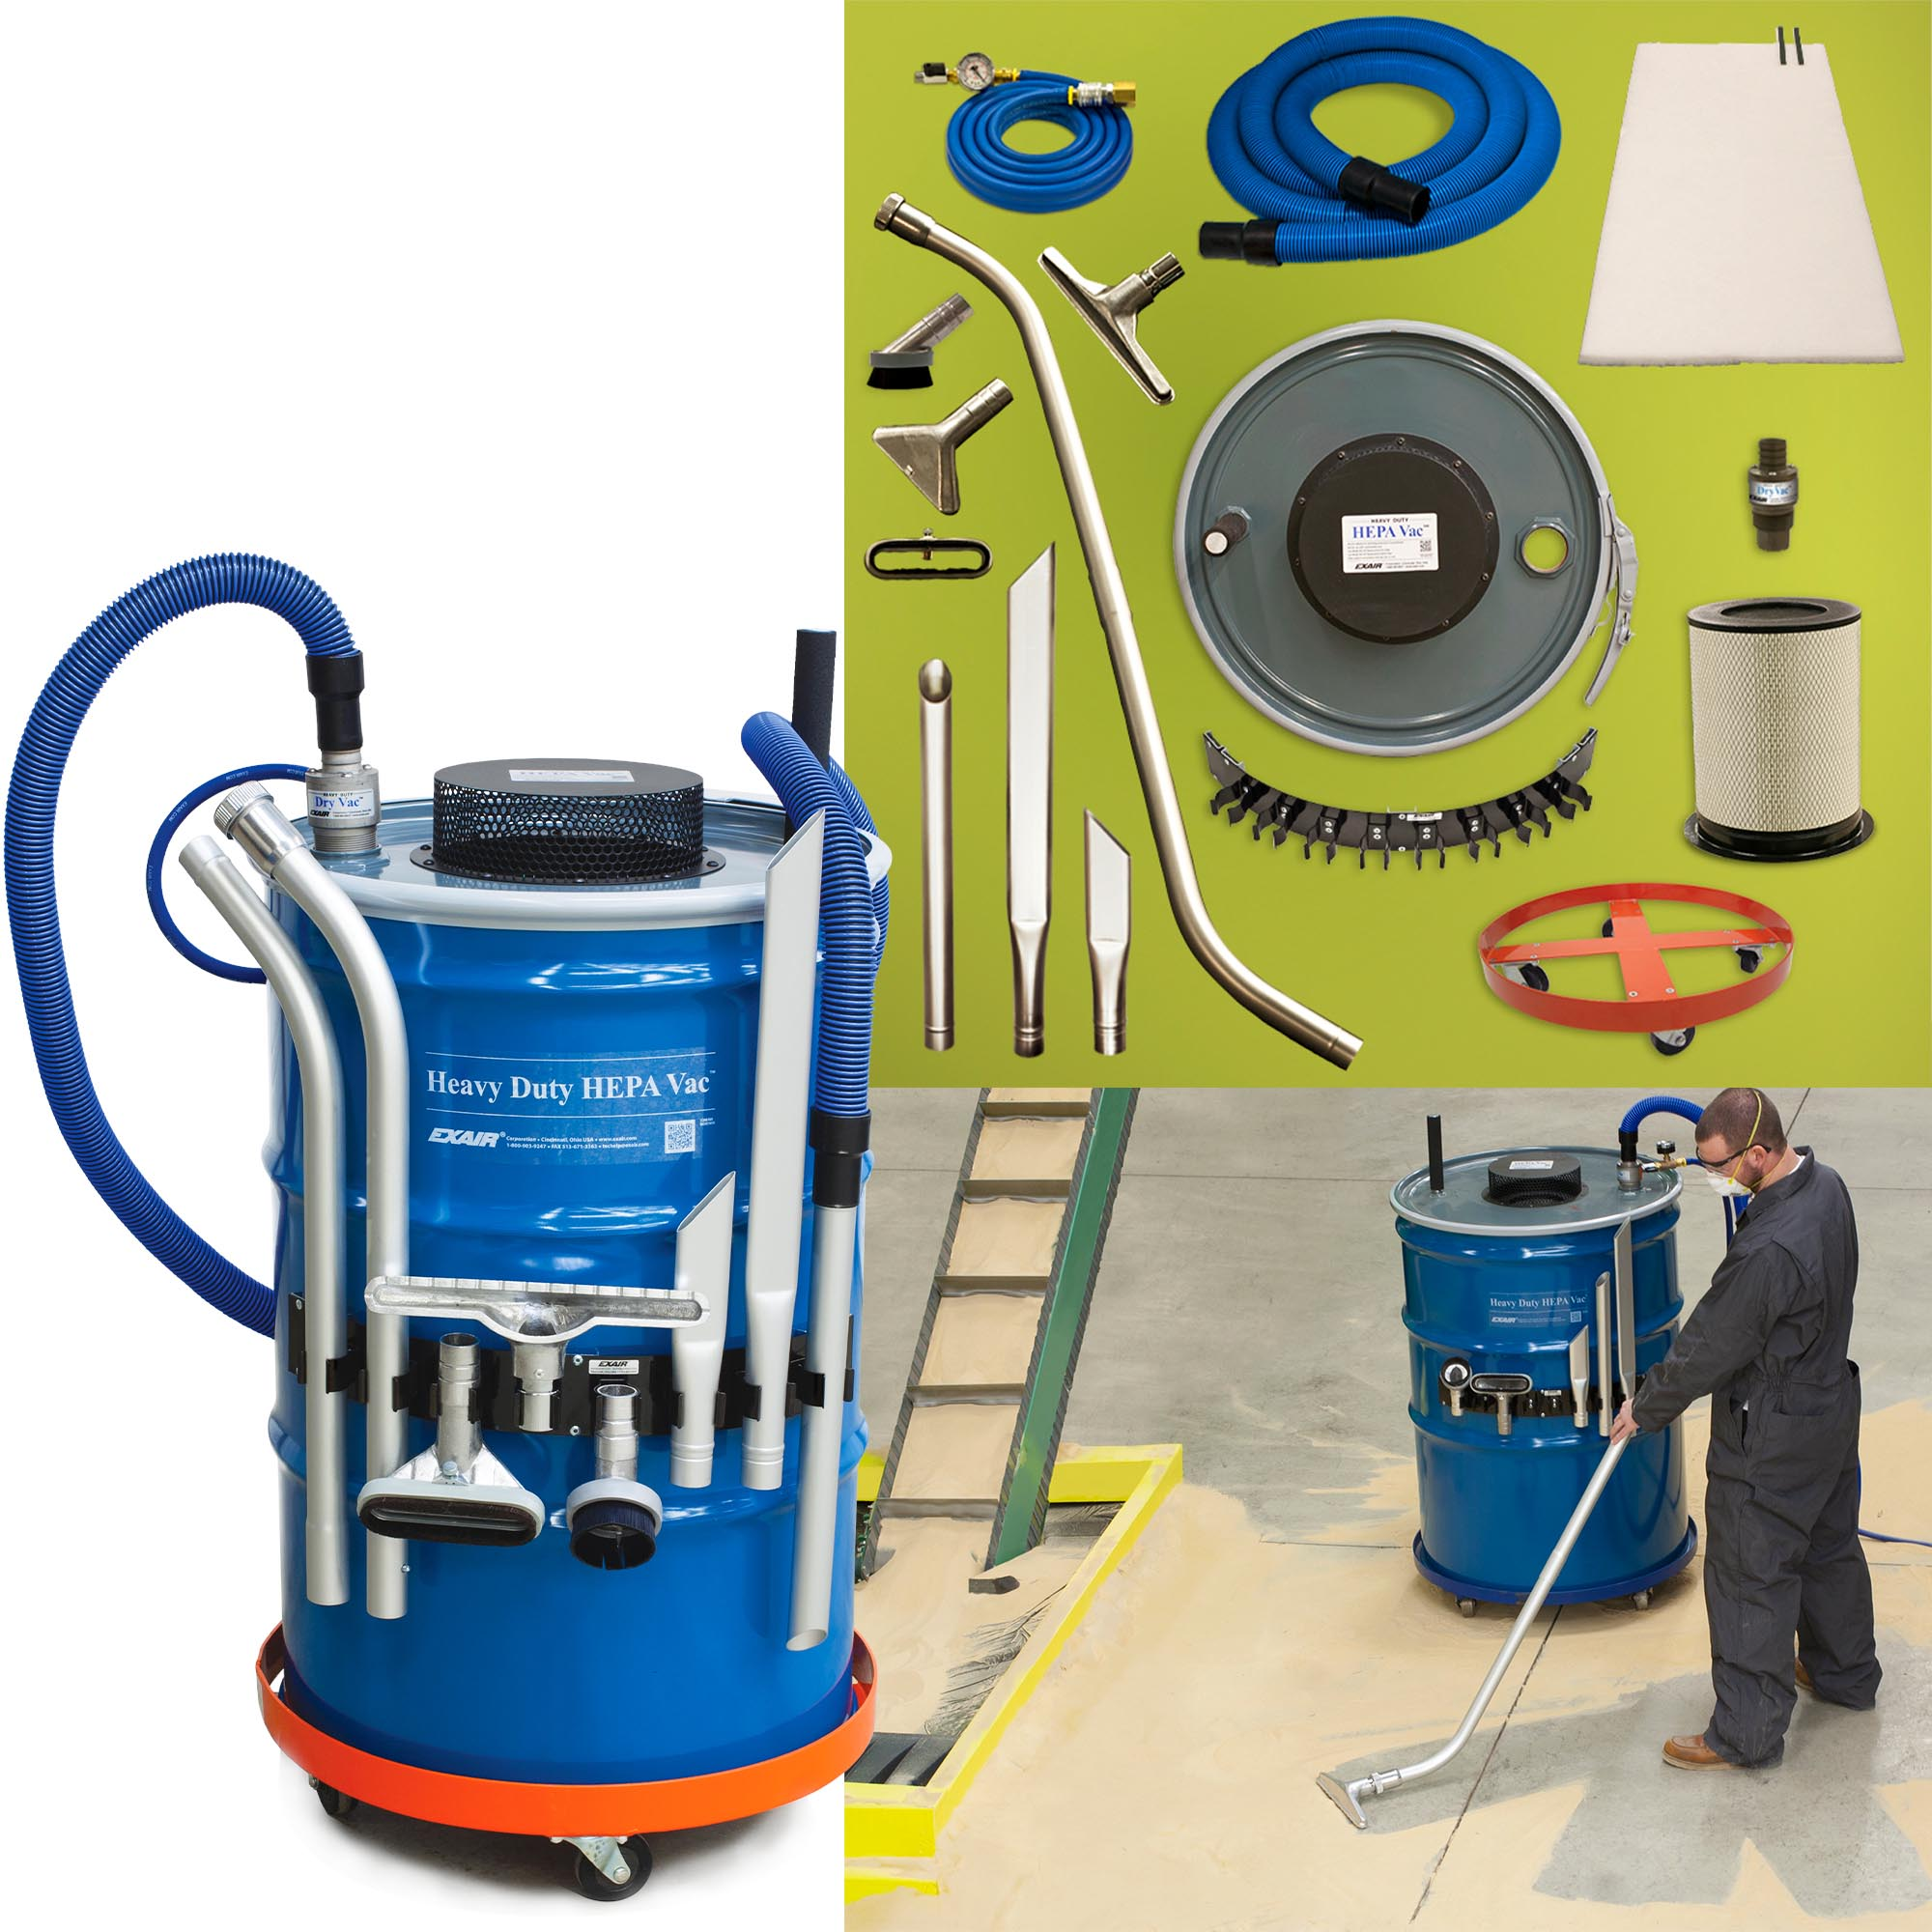 Heavy Duty HEPA Vac system accessories like heavy duty tools and replacement filter are available.